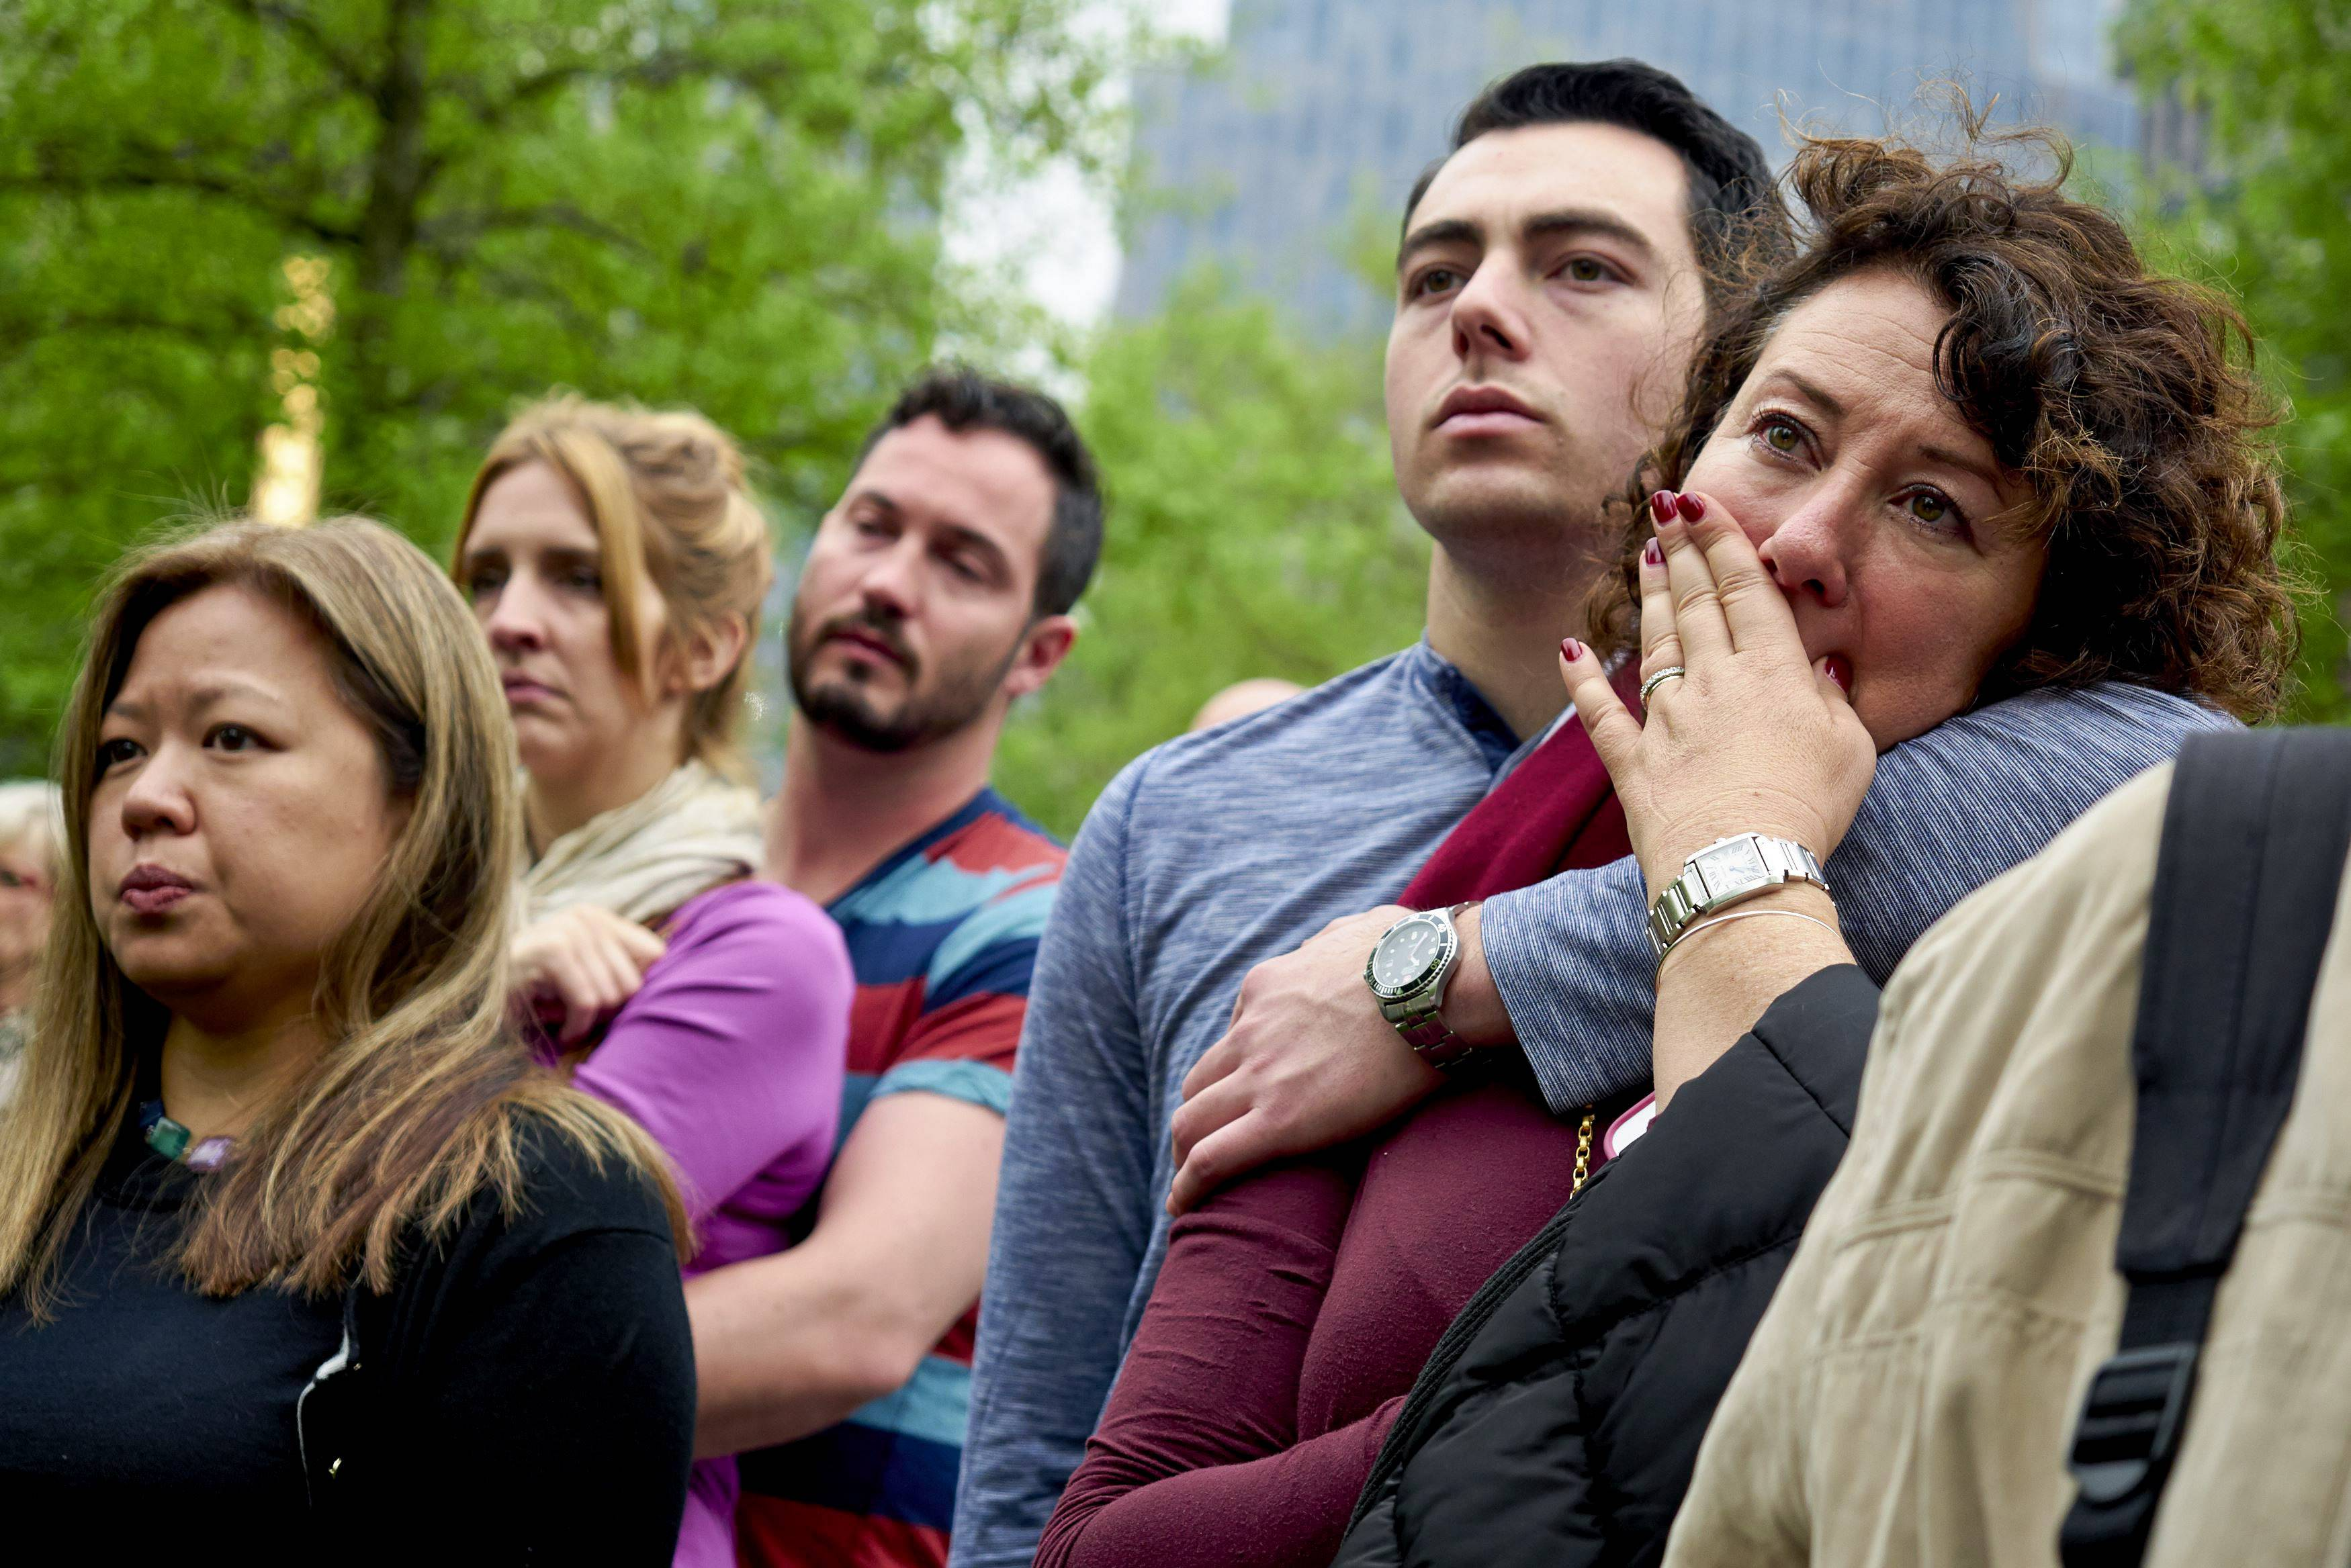 Visitors watch a screen projection of the dedication ceremony for the National September 11 Memorial Museum in New York, Thursday, May 15, 2014.